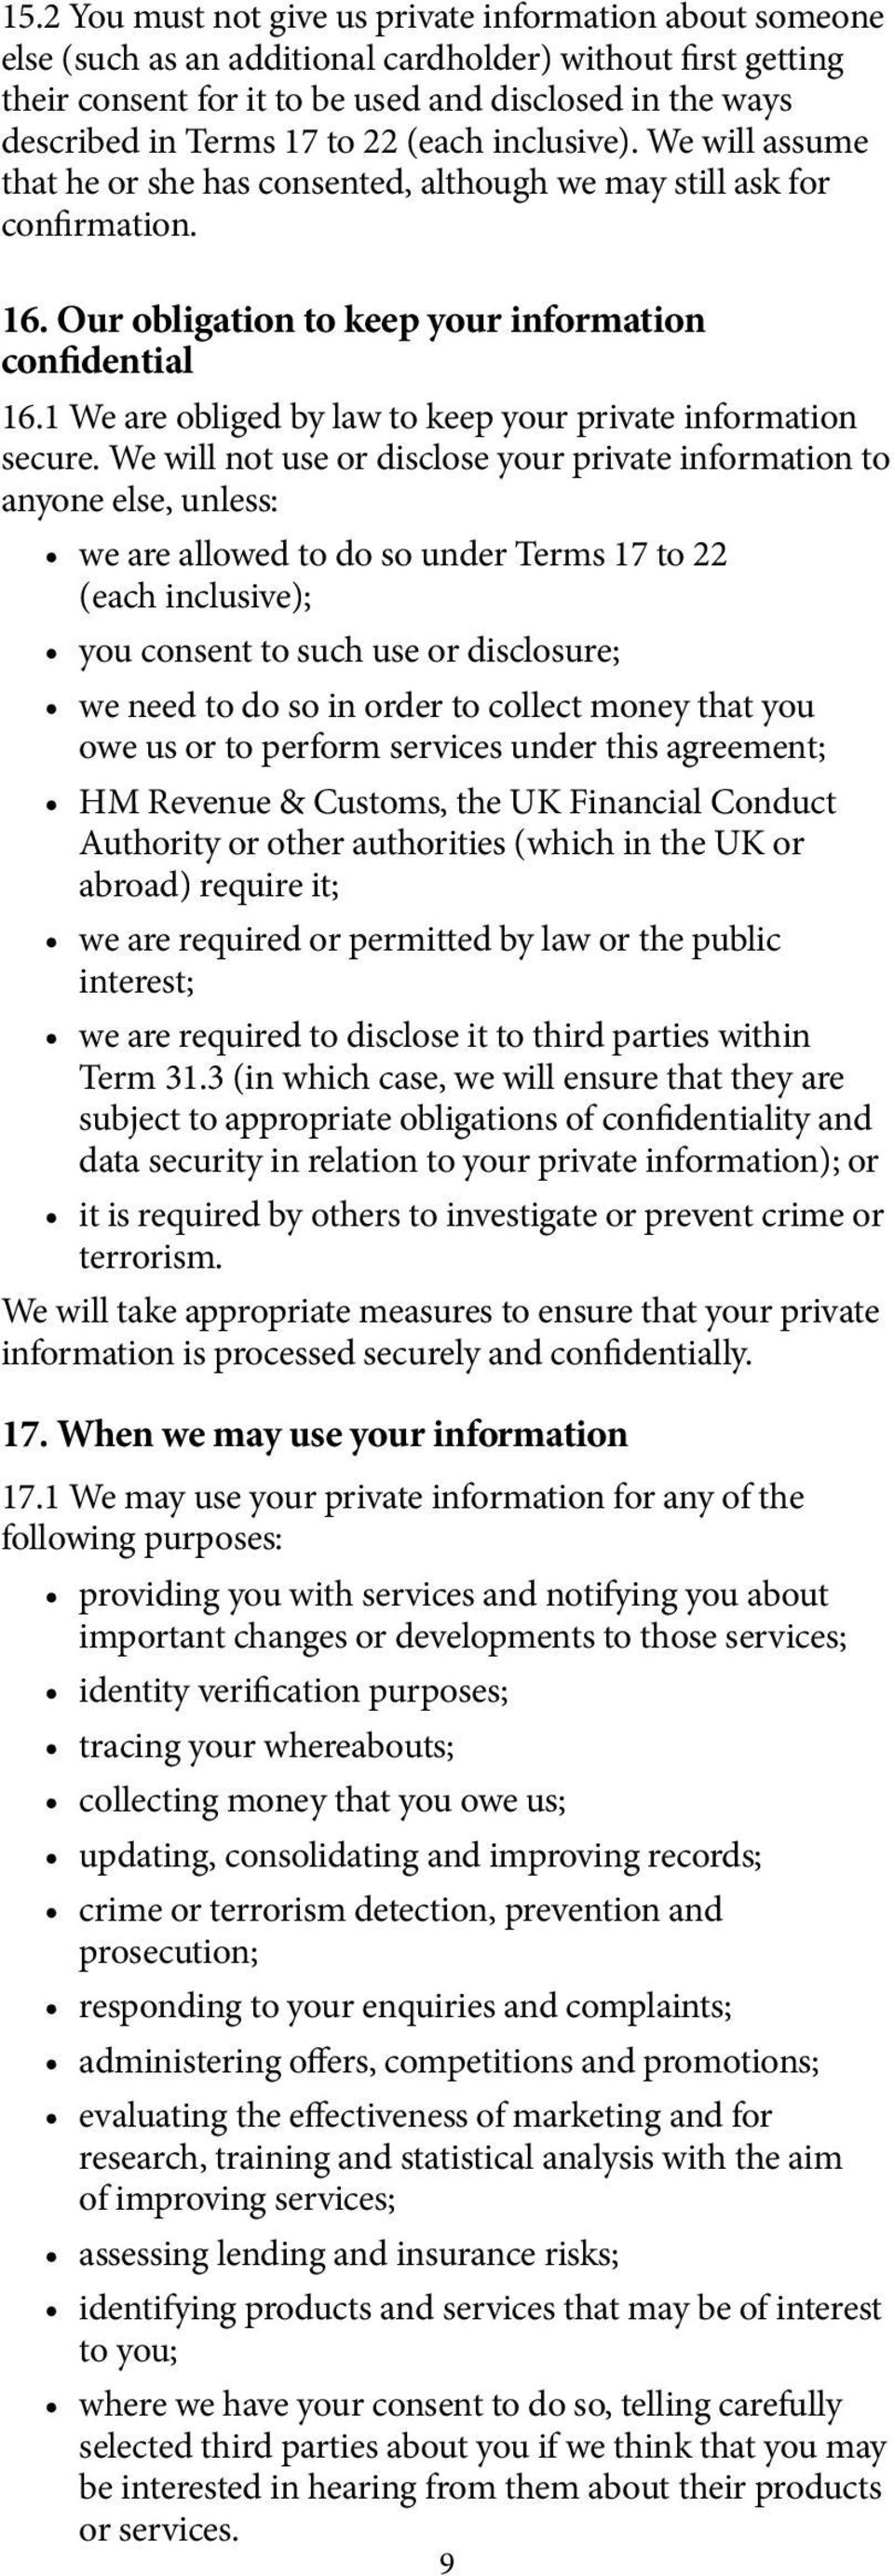 1 We are obliged by law to keep your private information secure.